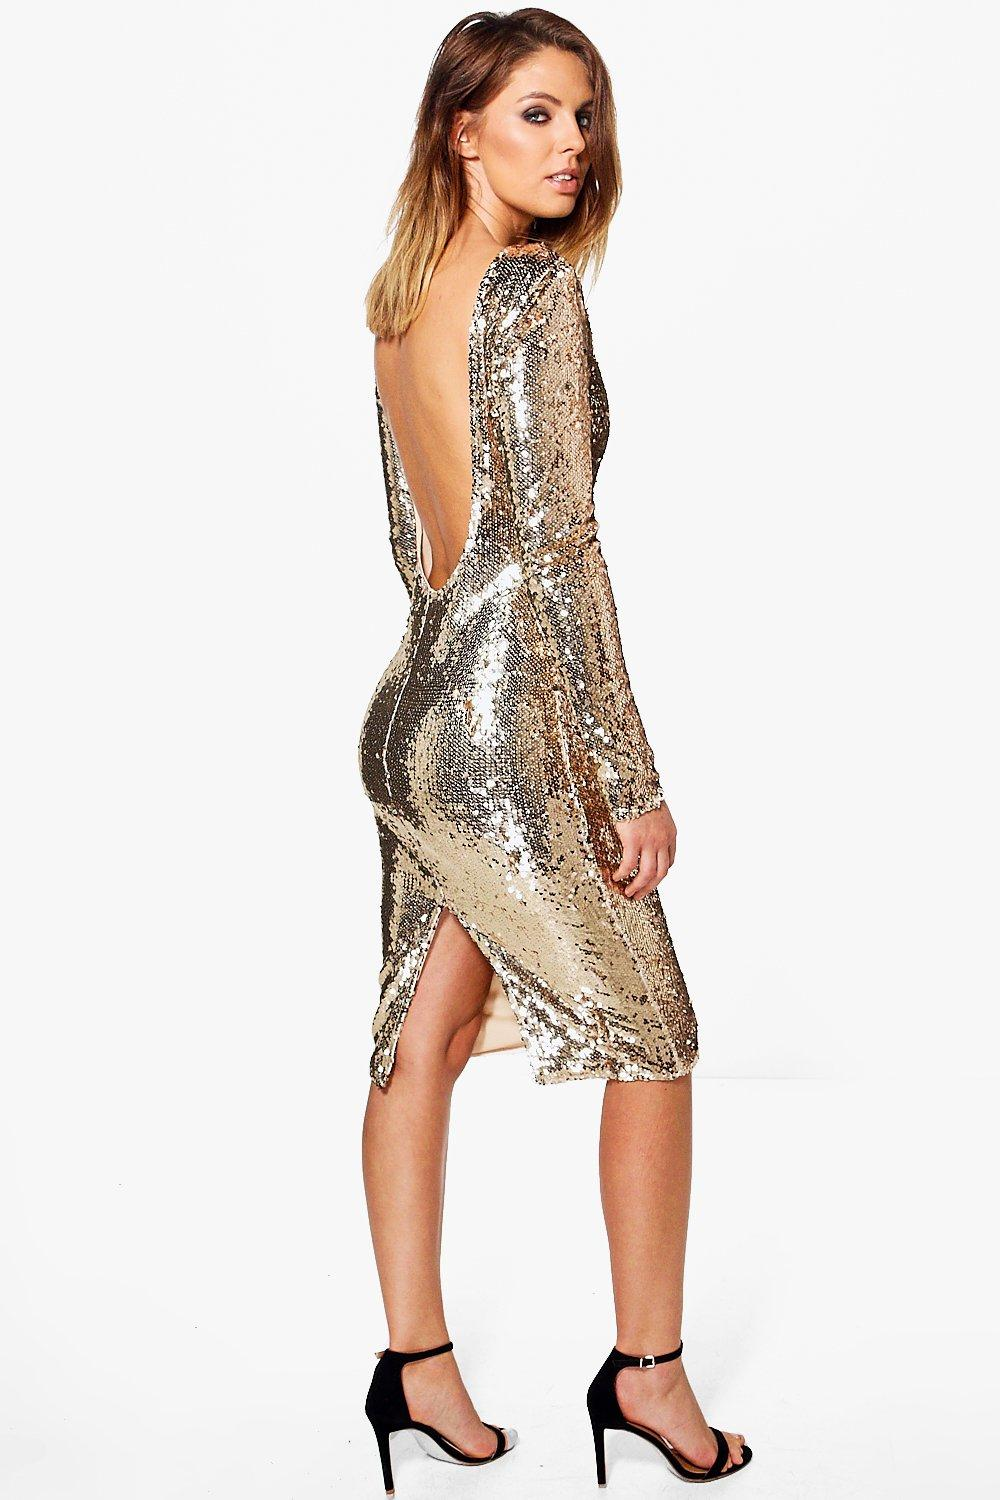 5052eaeaa384 Womens Boutique Sequin Open Back Midi Dress. Hover to zoom